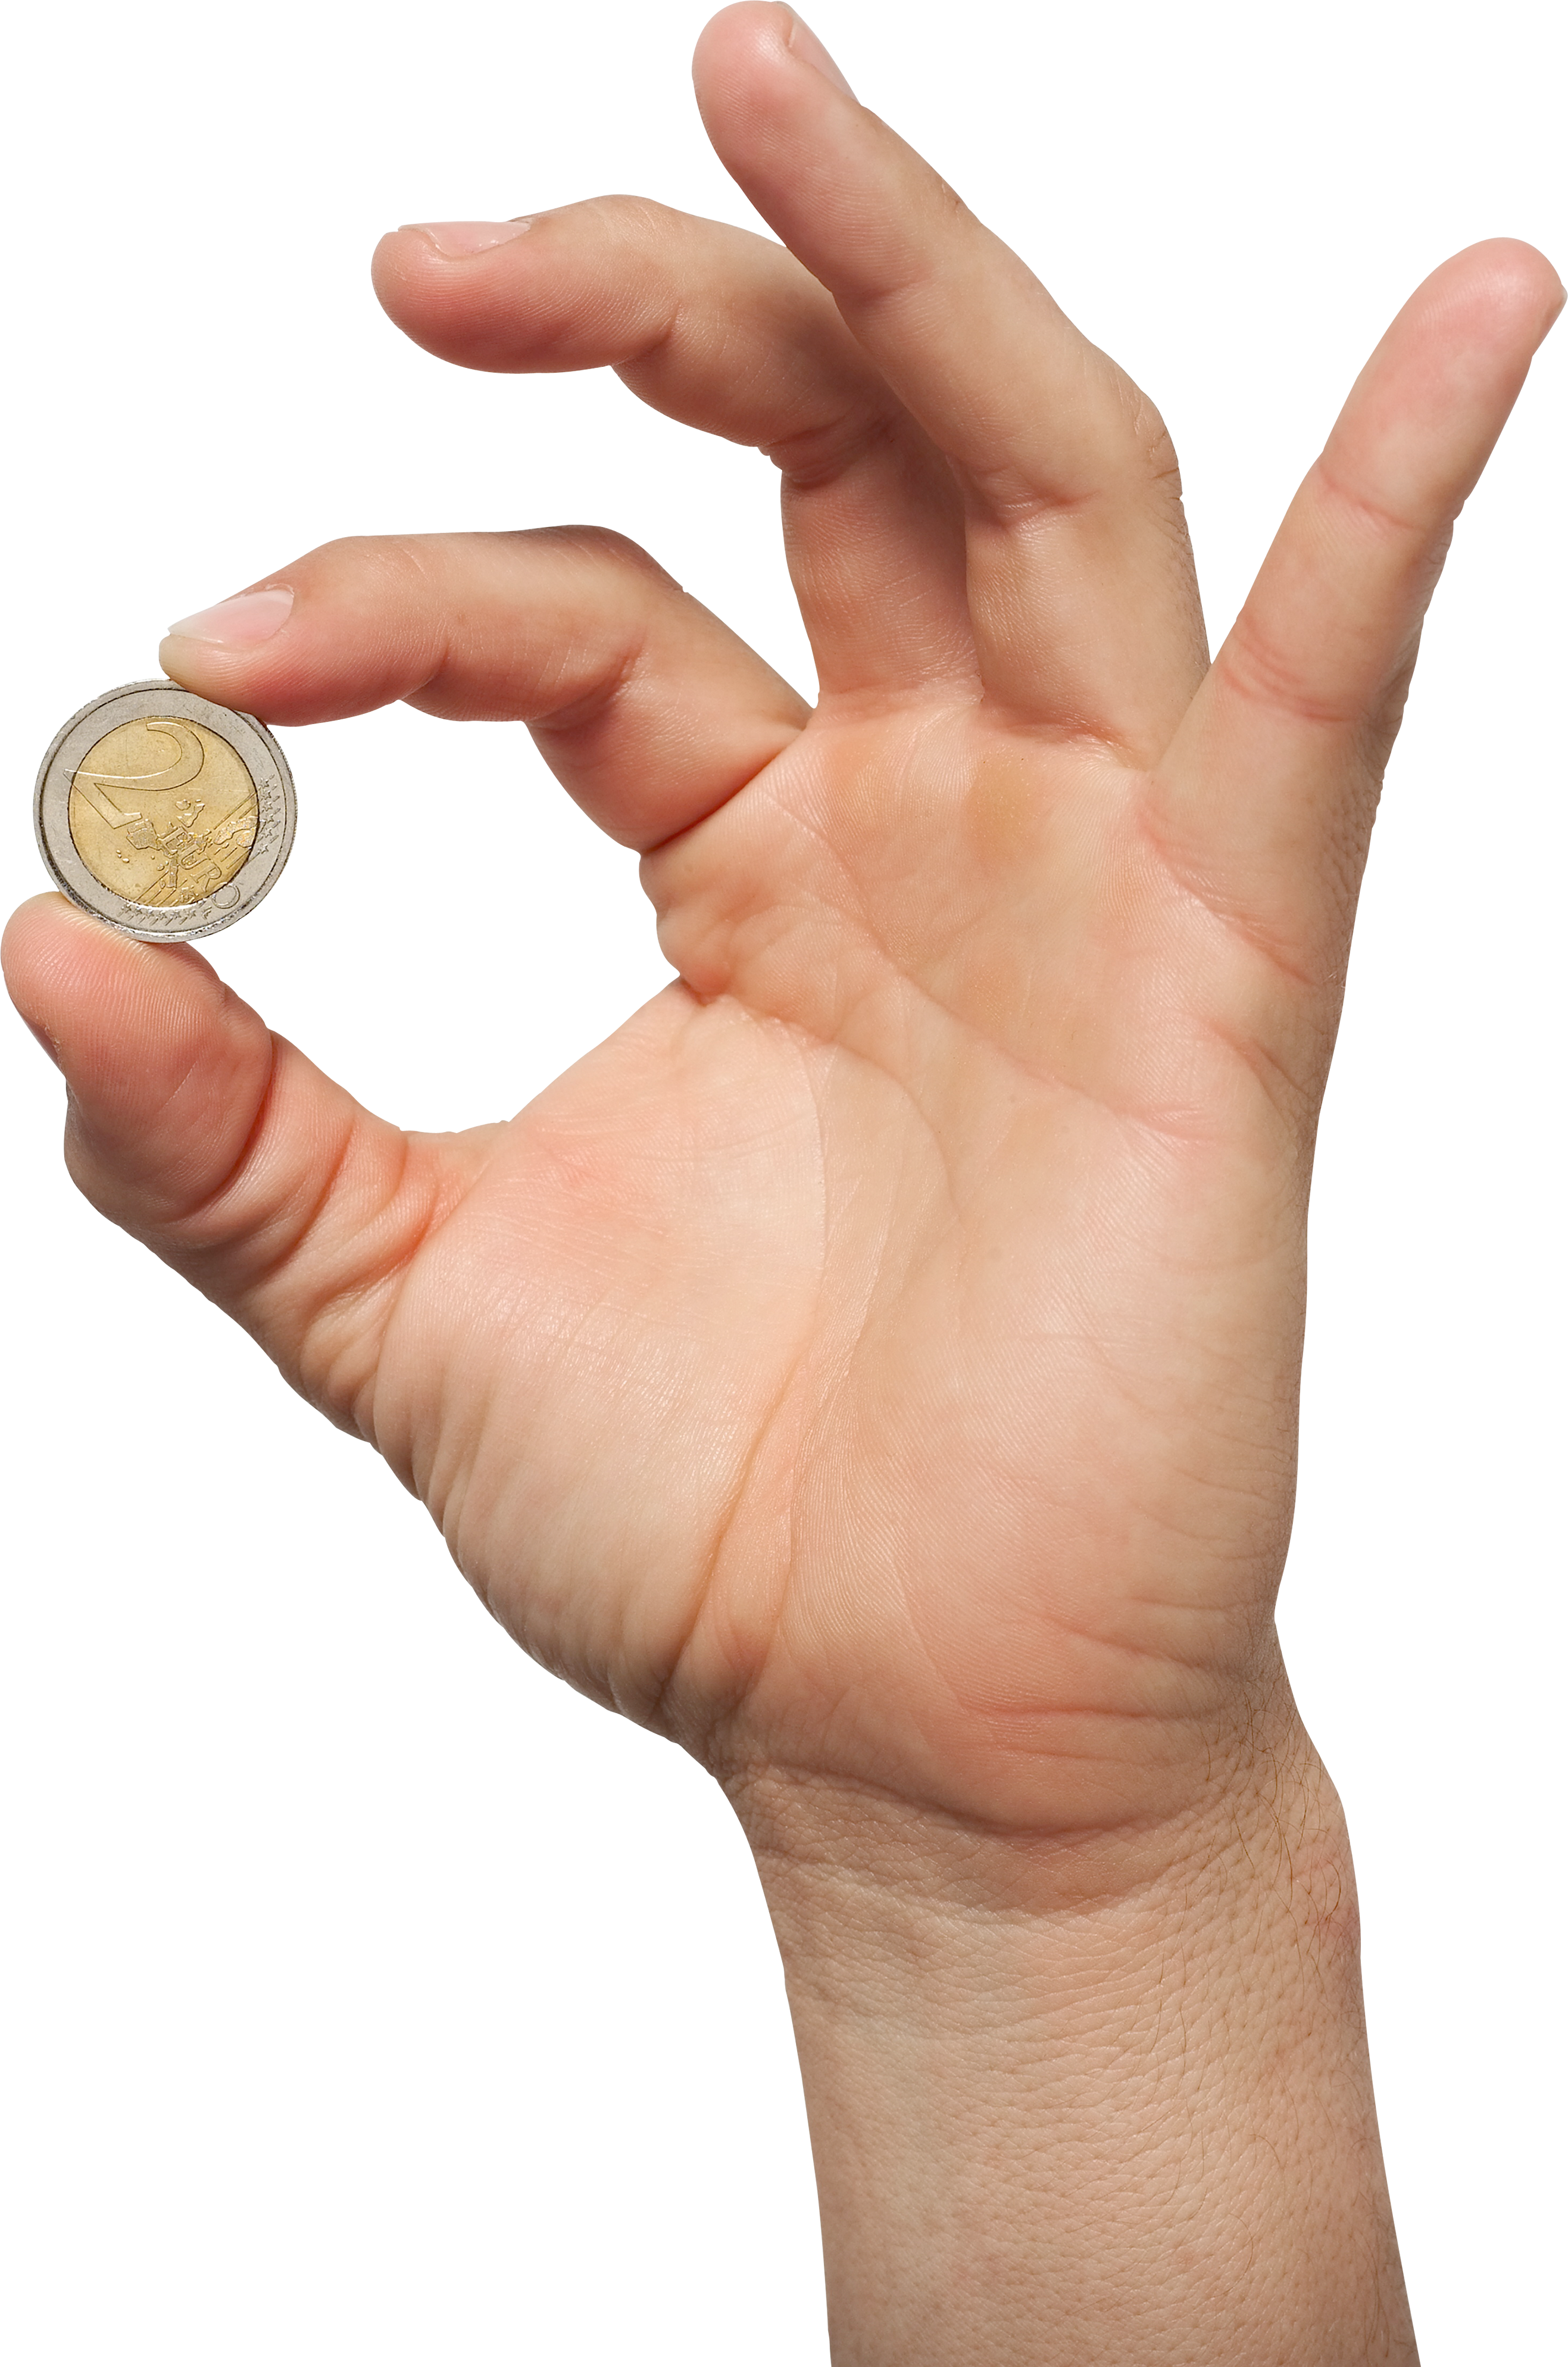 Money In Hand Png Pic image #44758